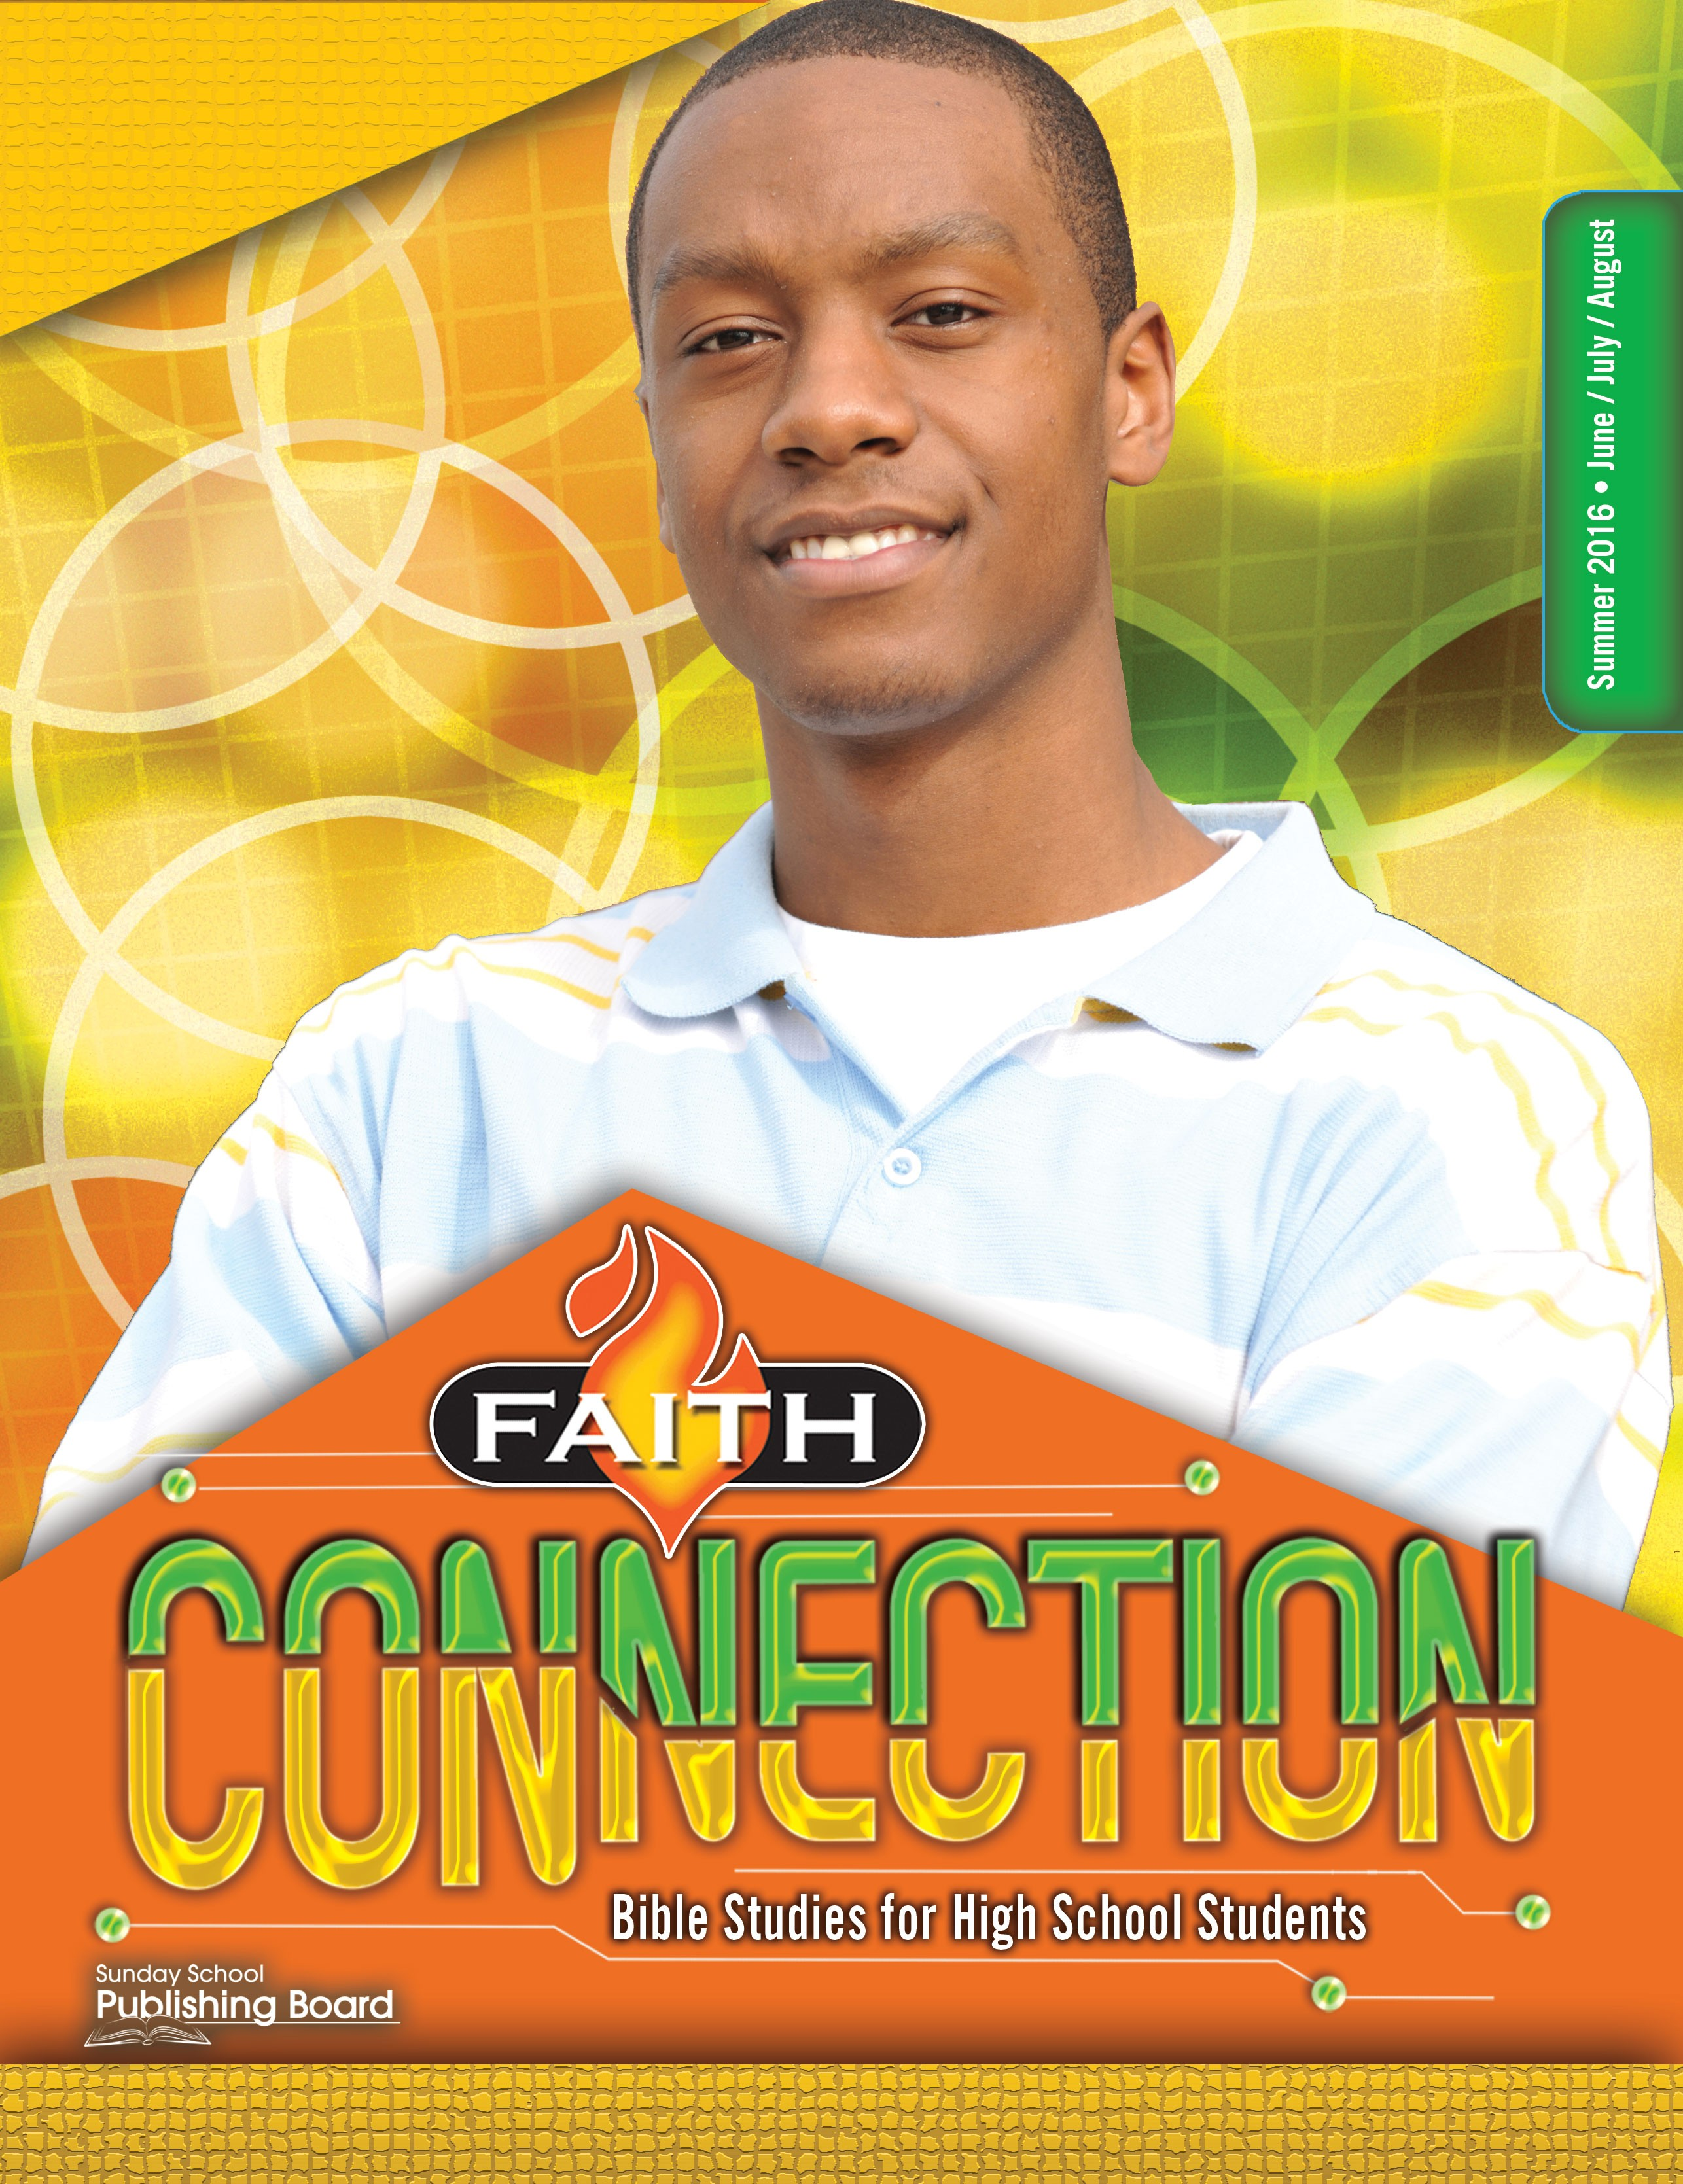 Faith Connection Bible Studies for High School Students (Summer 2016)–Digital Edition